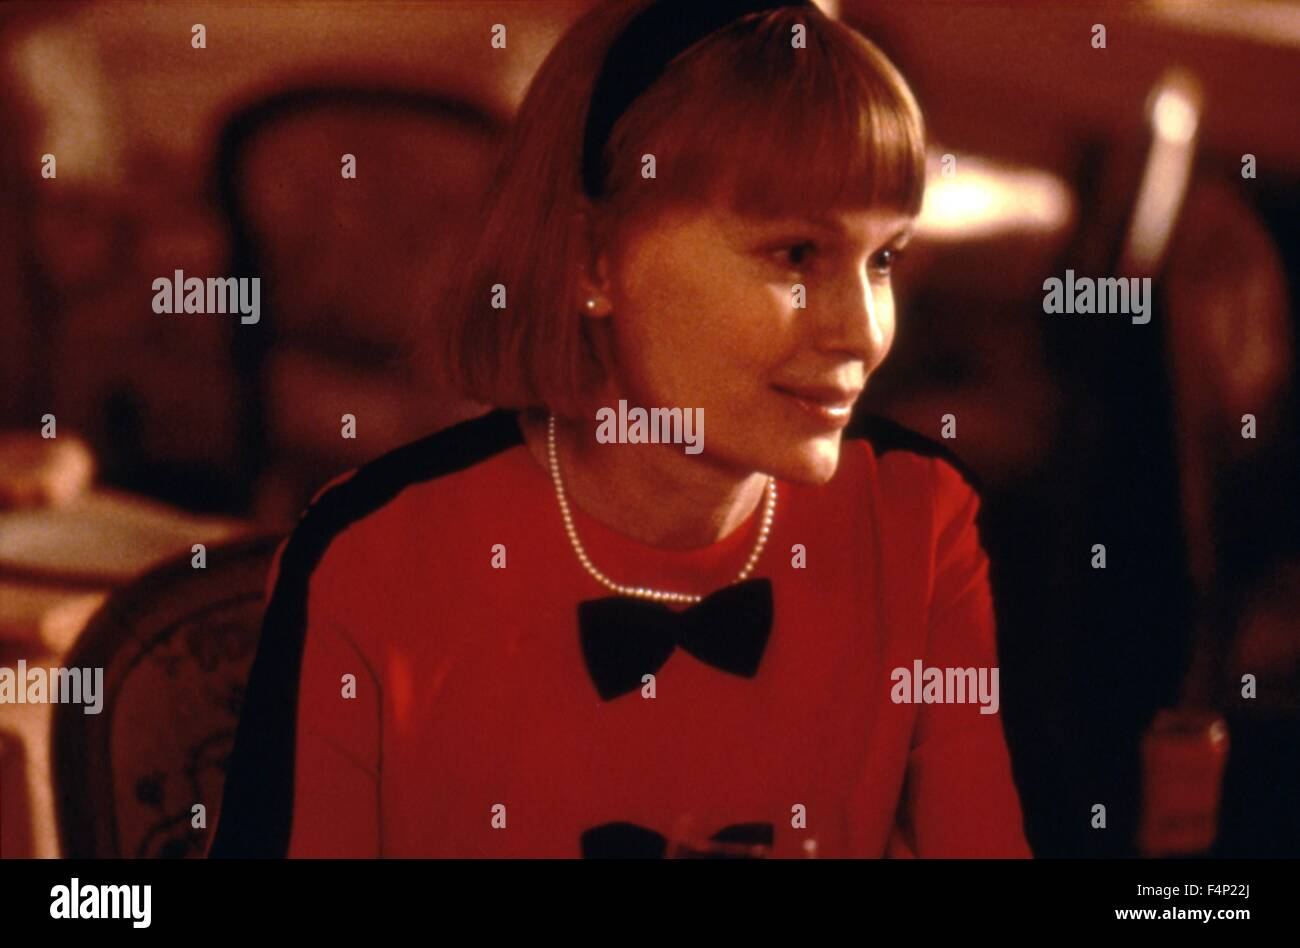 Mia Farrow / Alice 1990 directed by Woody Allen - Stock Image